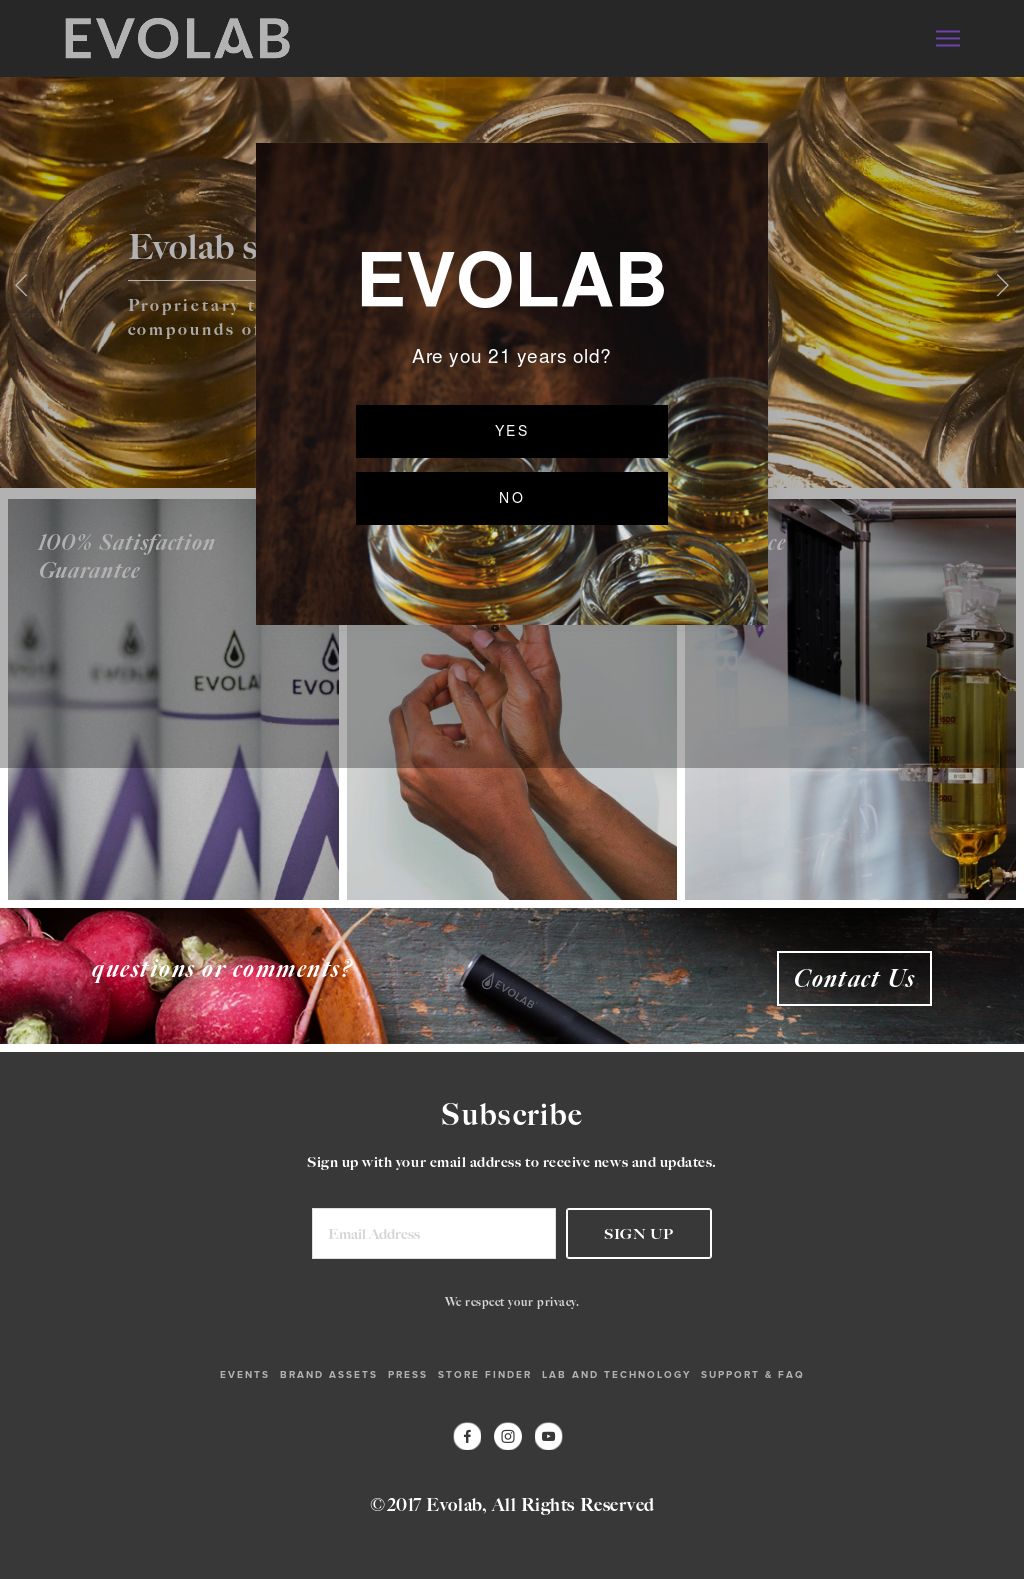 Evolab Competitors, Revenue and Employees - Owler Company Profile